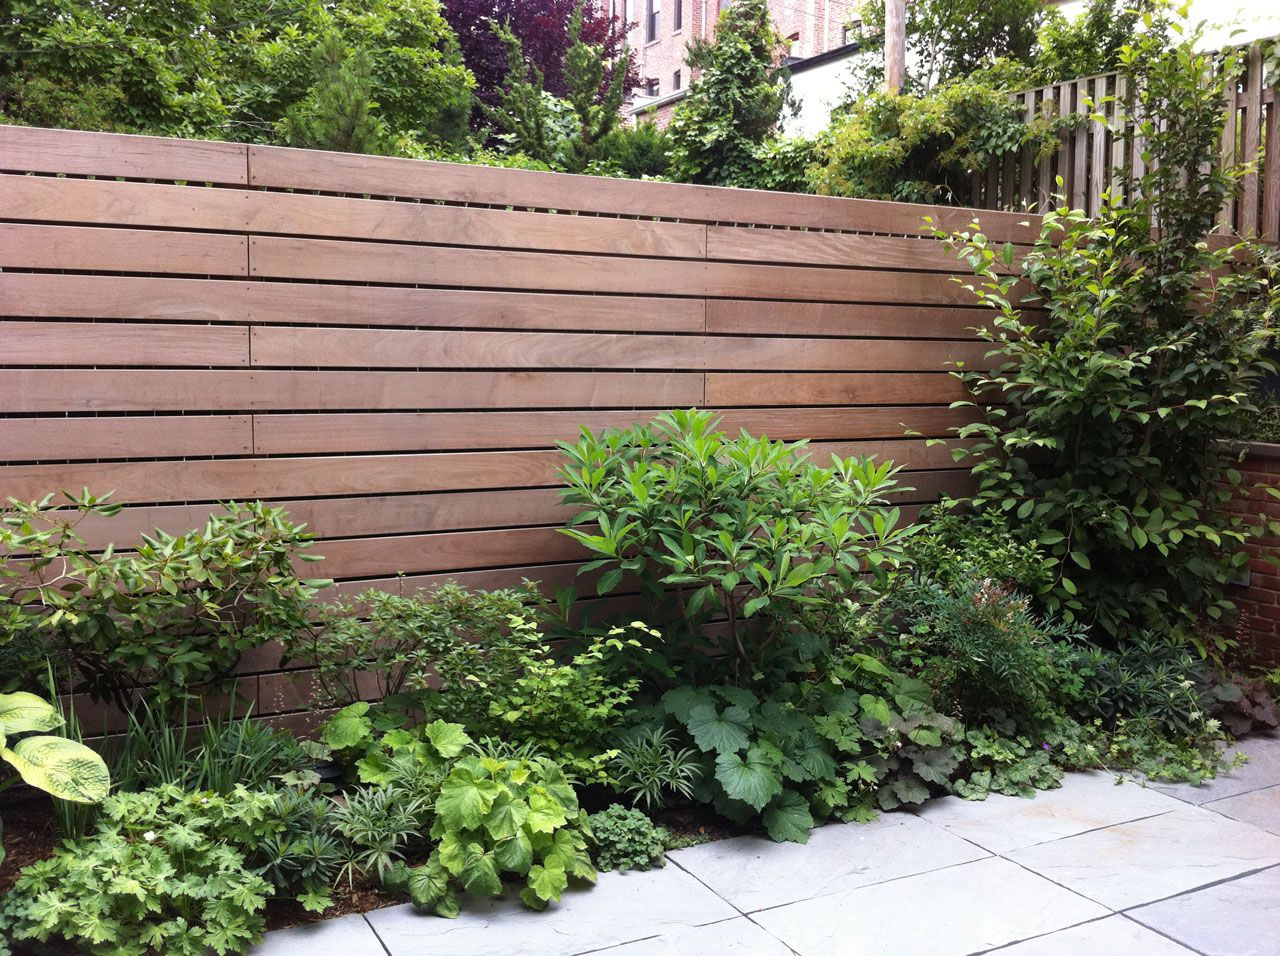 10 Garden Fence Ideas to Make Your Green Space More Beautiful ...